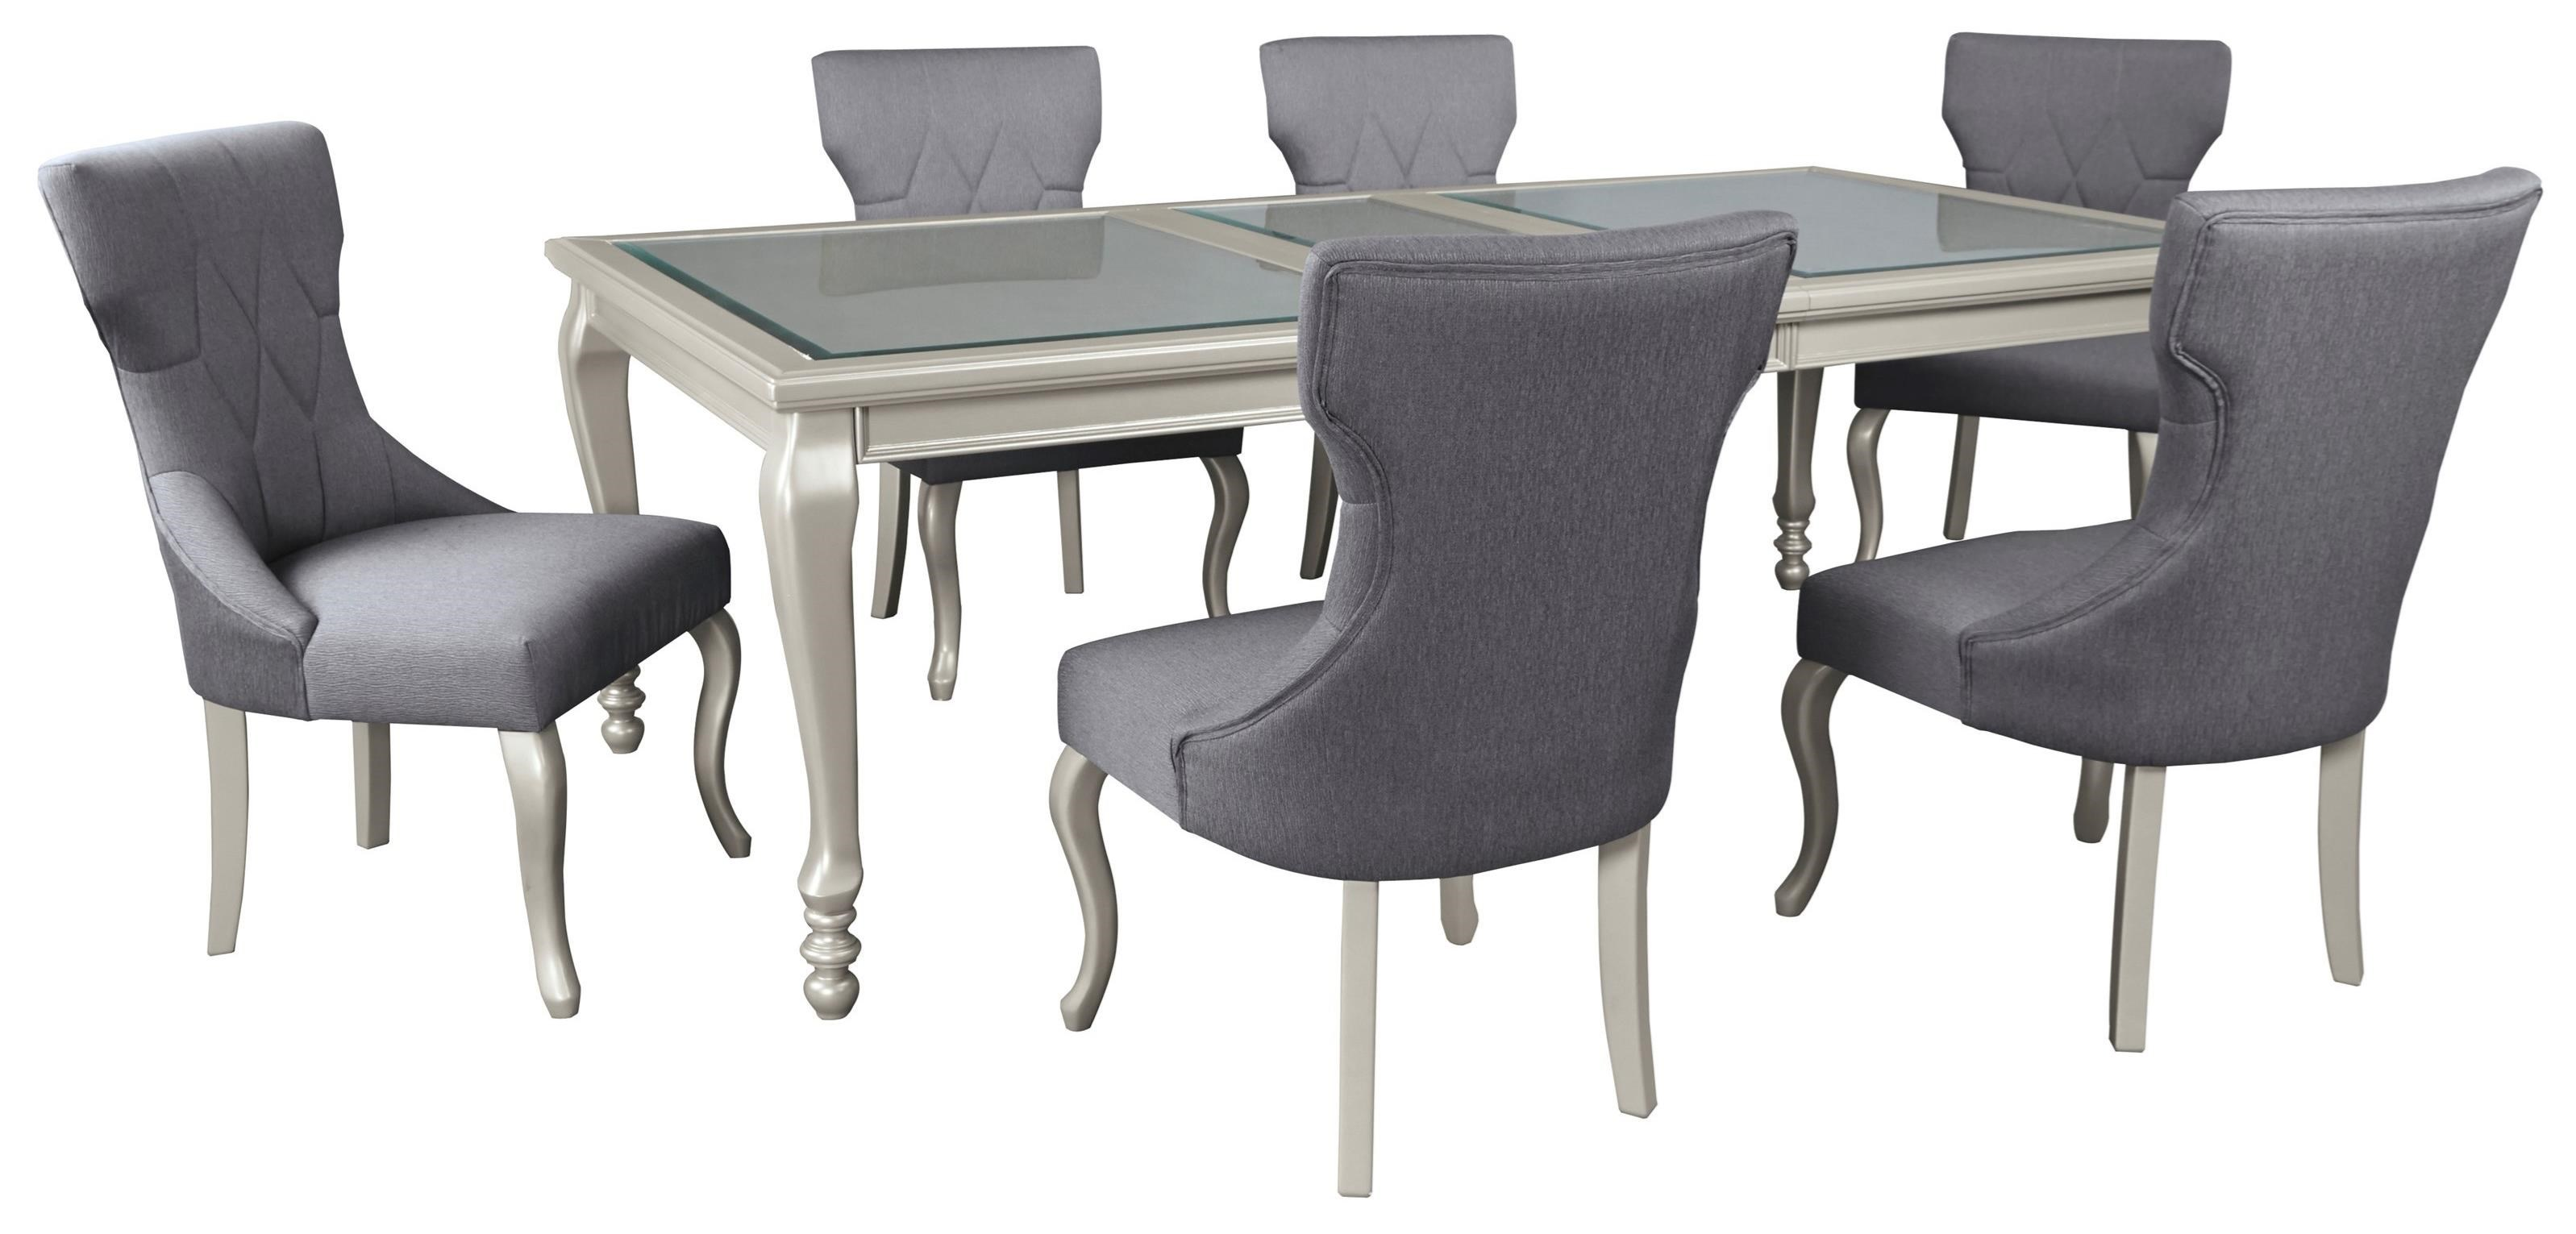 7 Piece Rectangular Dining Room Extension Table Set By